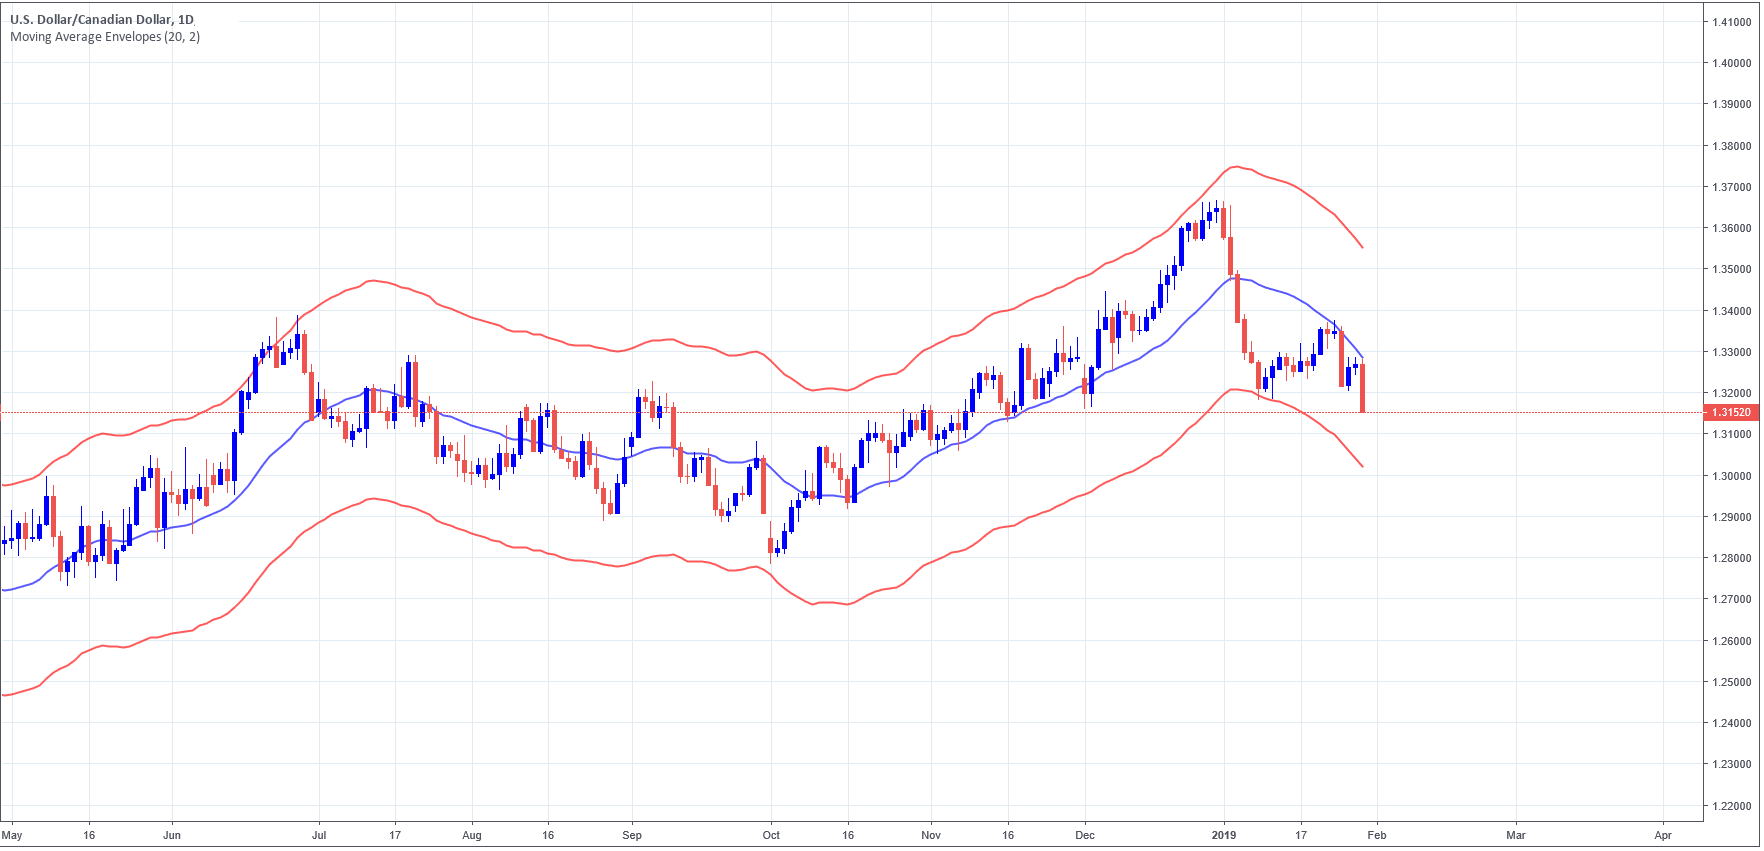 USDCAD daily chart, with the moving average envelope using 20 as period